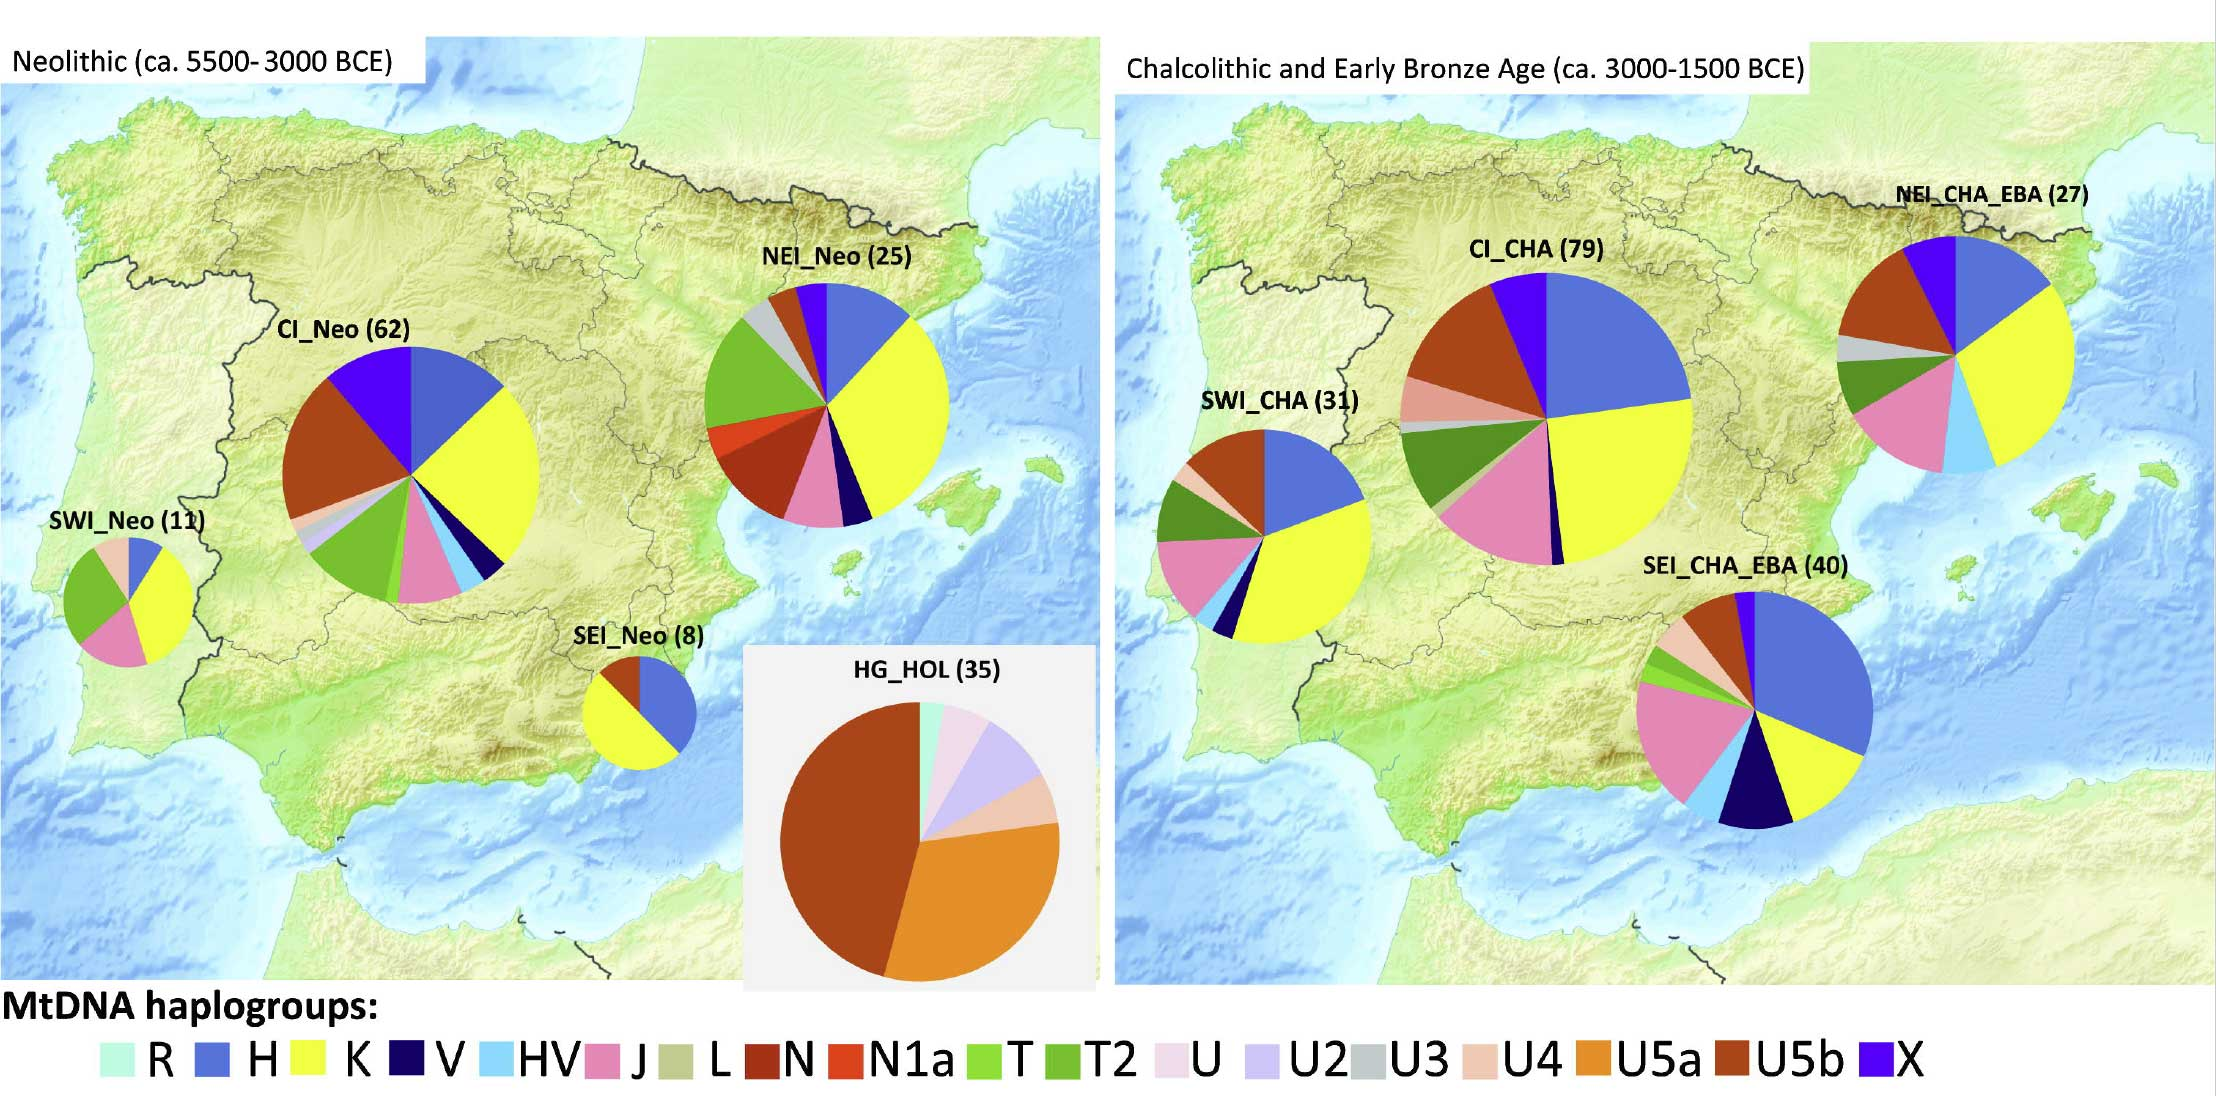 Iberian Peninsula: Discontinuity in mtDNA between hunter-gatherers on croatia world map, polynesia world map, arabian desert on world map, salem world map, asante world map, ascension world map, houston world map, english channel world map, britannia world map, northwest world map, south asia on world map, philadelphia world map, tap world map, anatolia on world map, st. martin world map, acadia world map, sas world map, mesoamerica world map, congo river world map, danube world map,